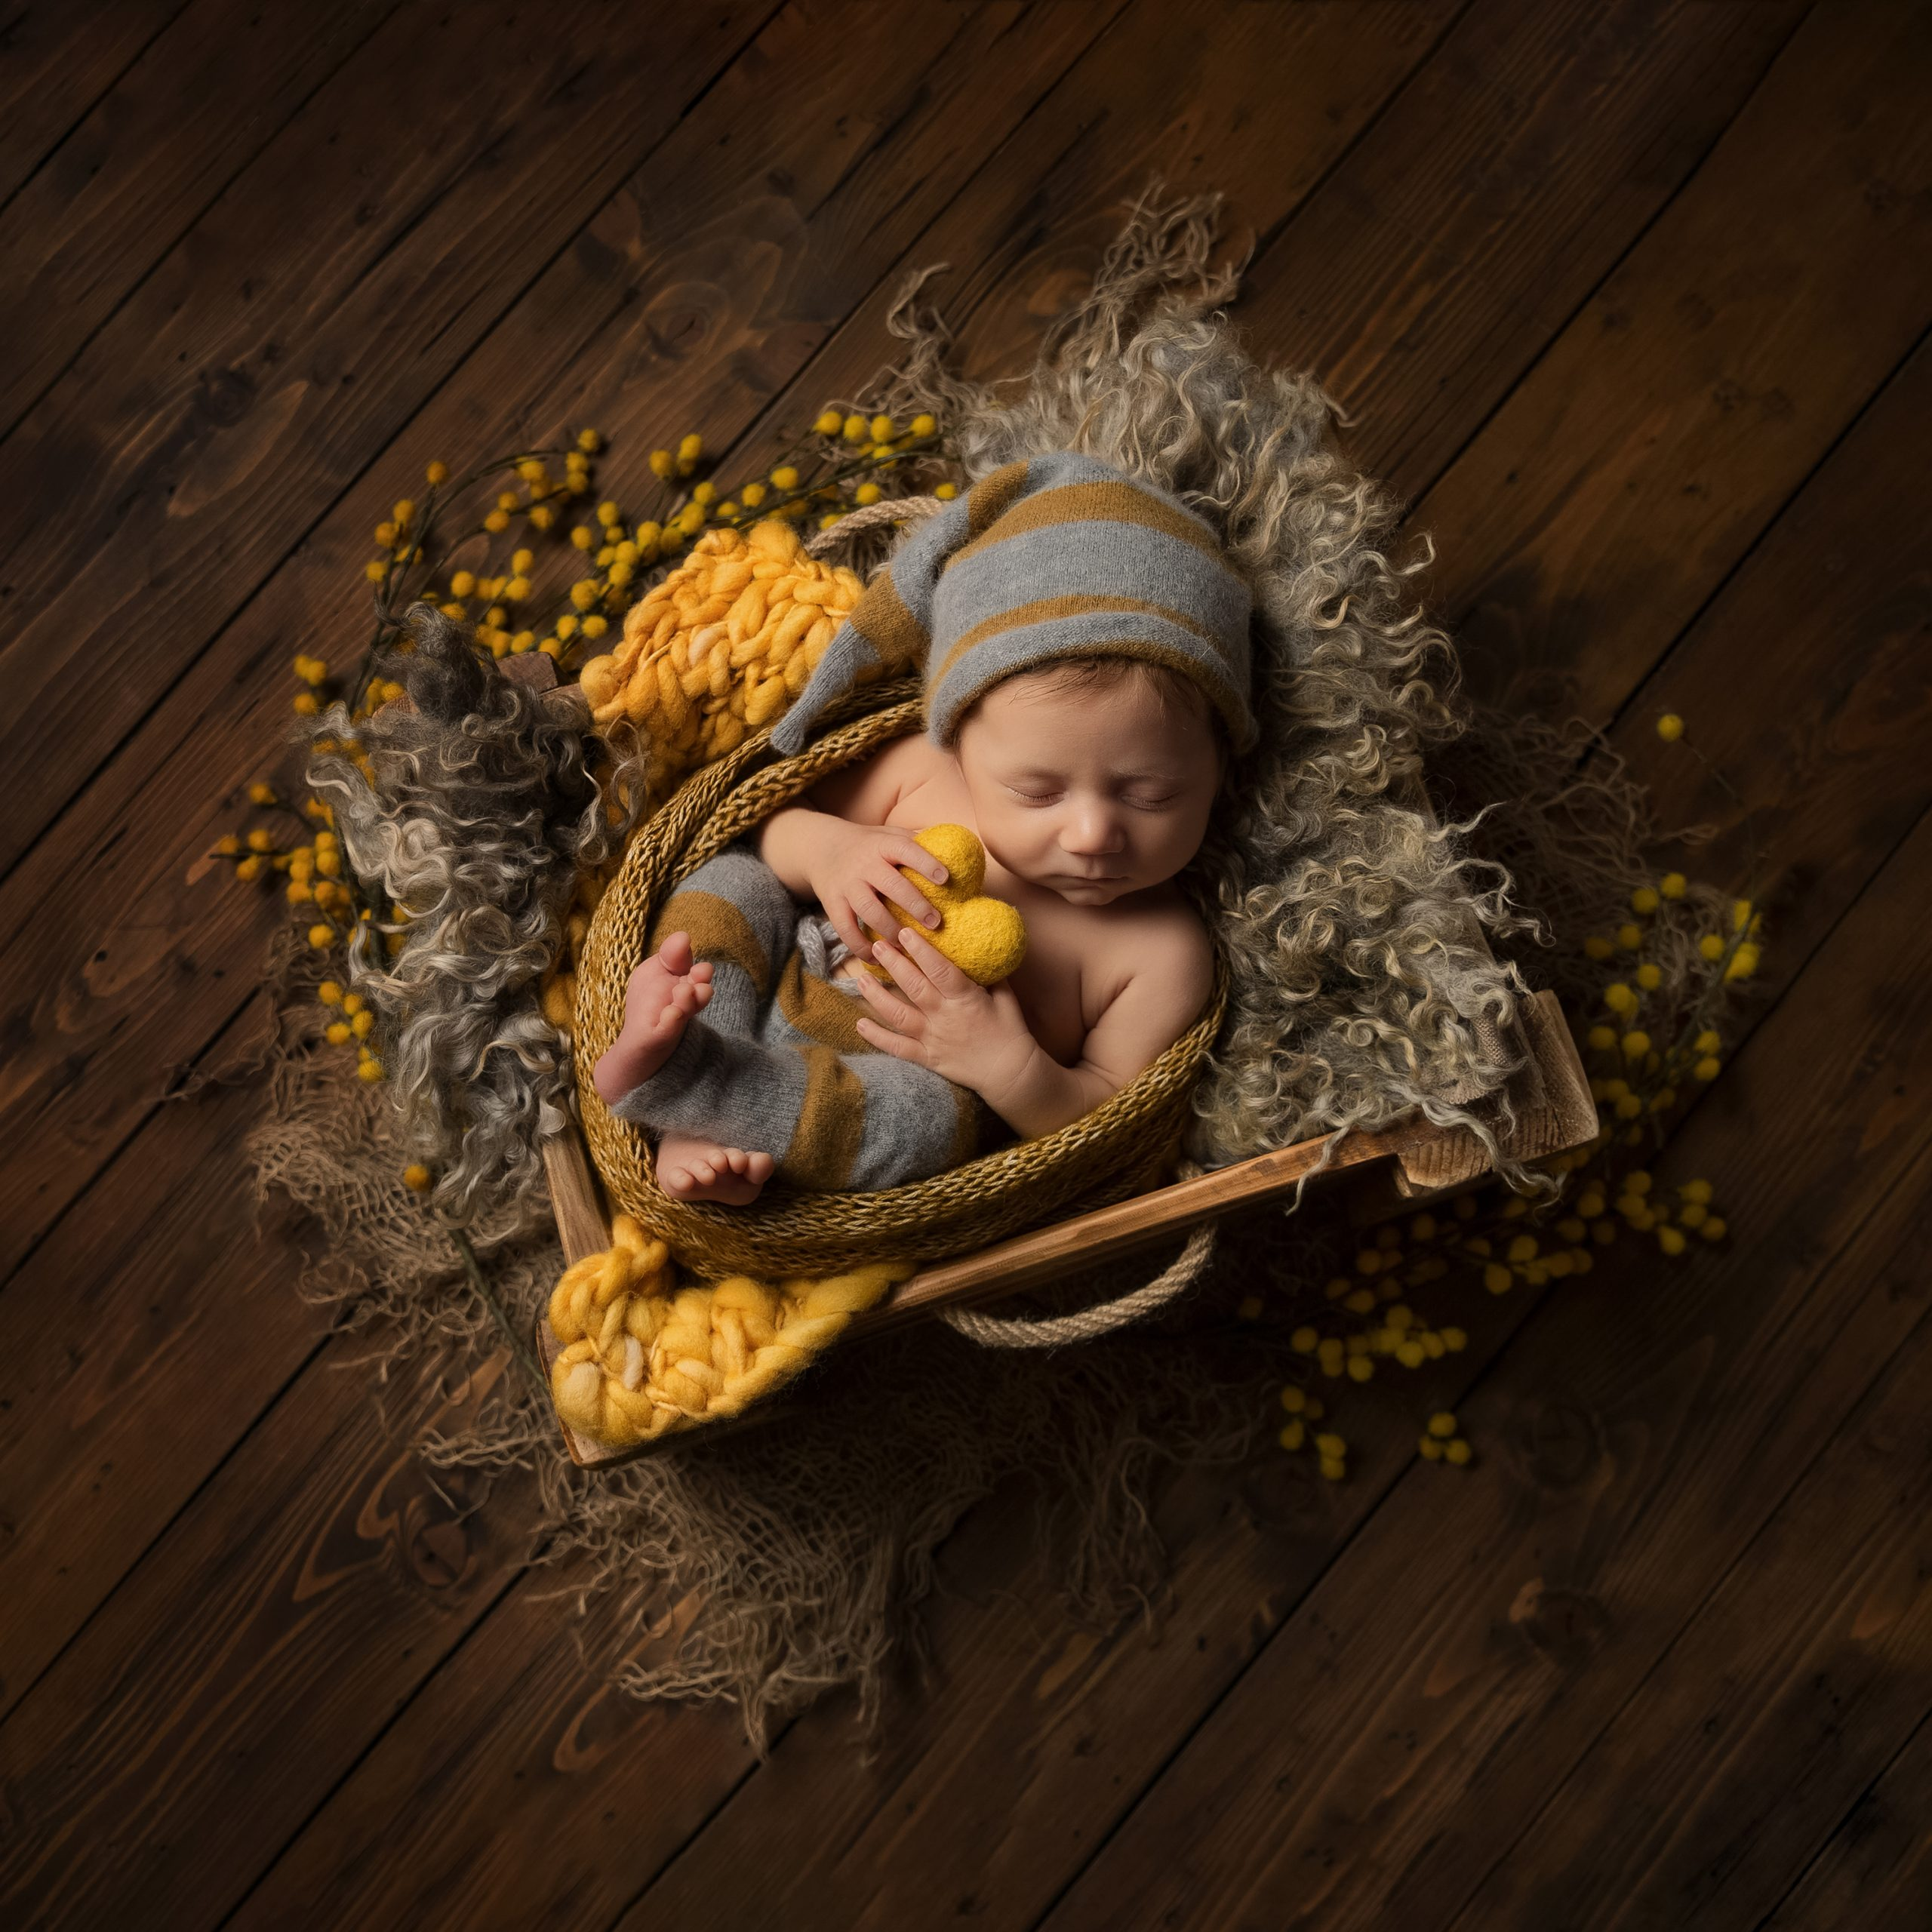 Newborn baby holding a yellow heart as part of my Master Craftsman in Newborn Photography panel by award winning photographer